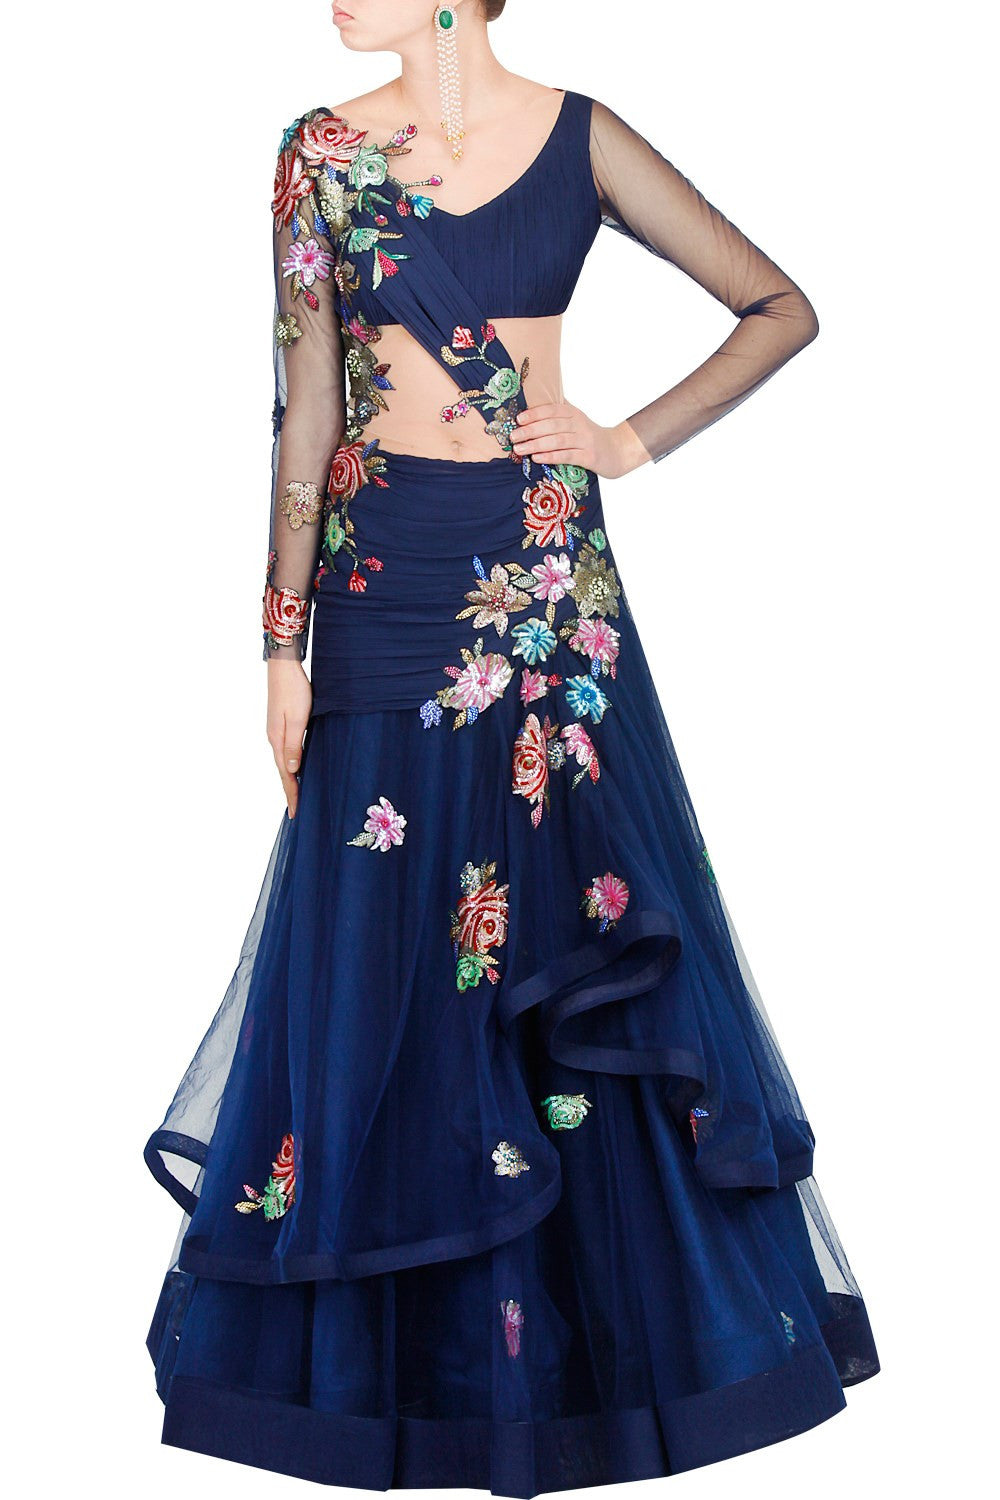 Blue color flared embroidered gown